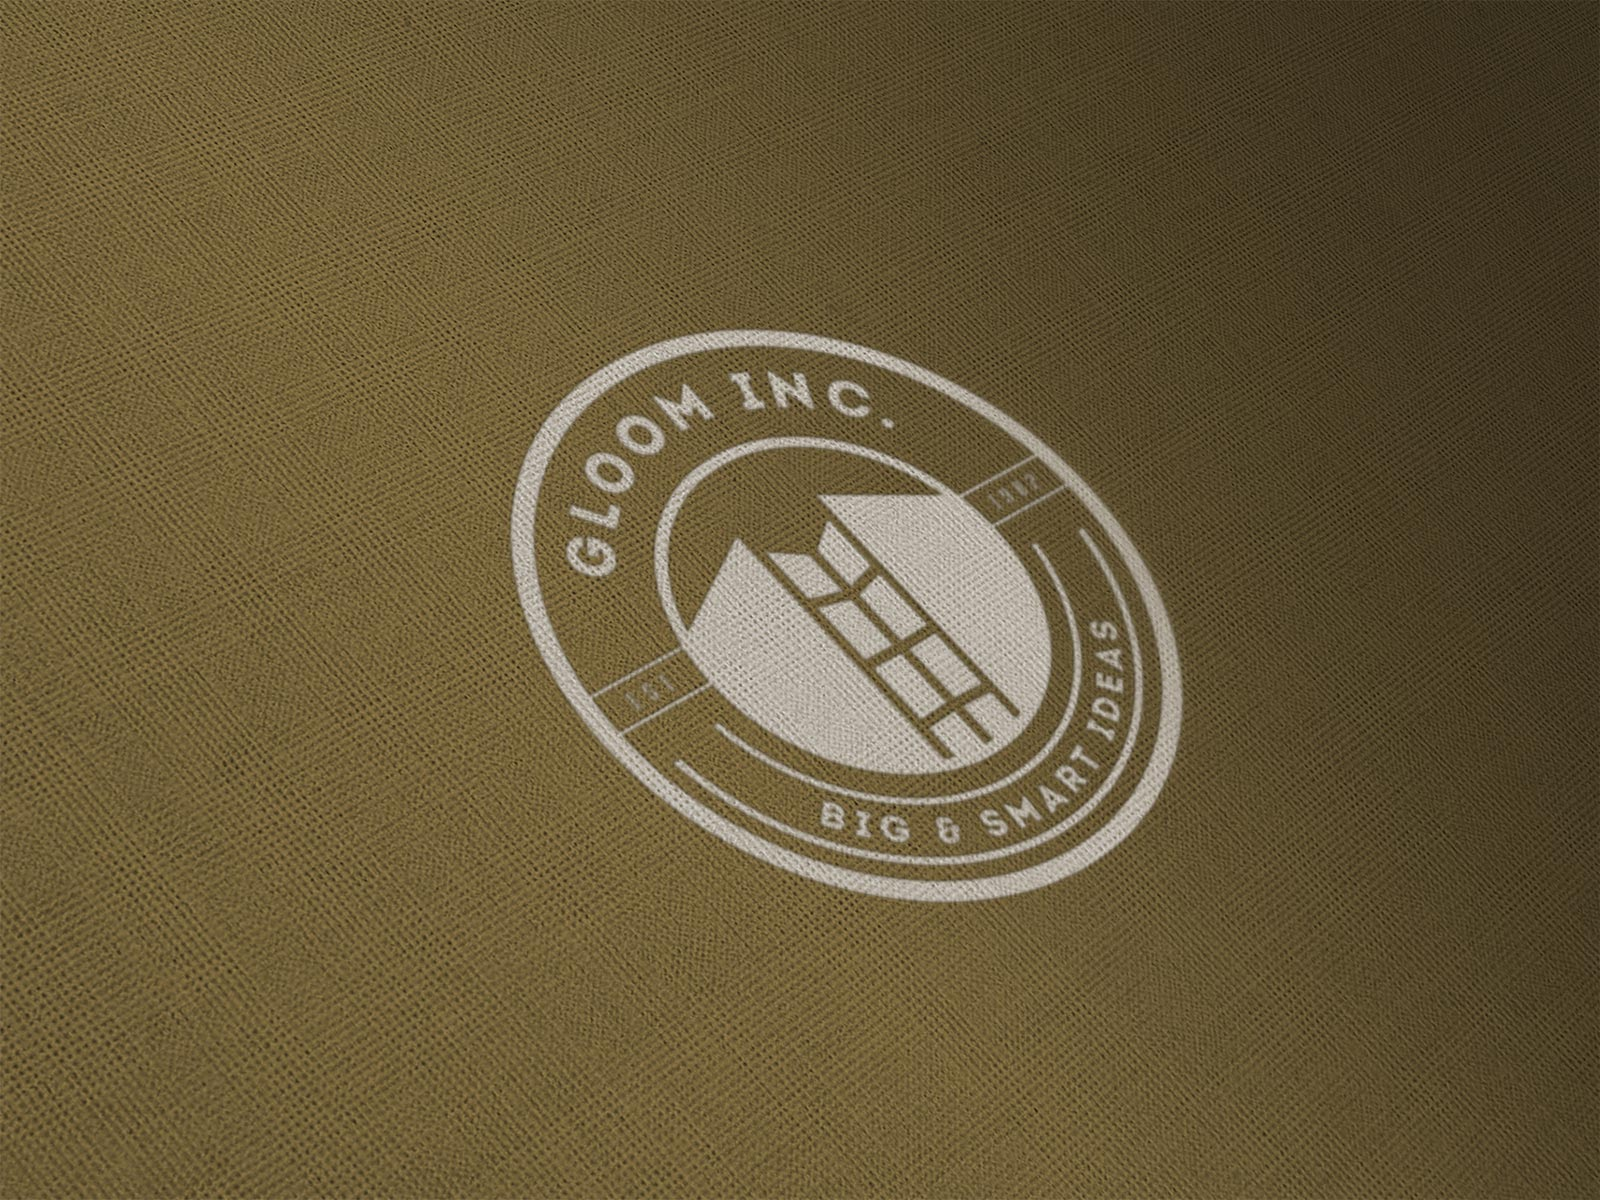 Free-Burlap-Fabric-Cloth-Logo-Mockup-PSD-3